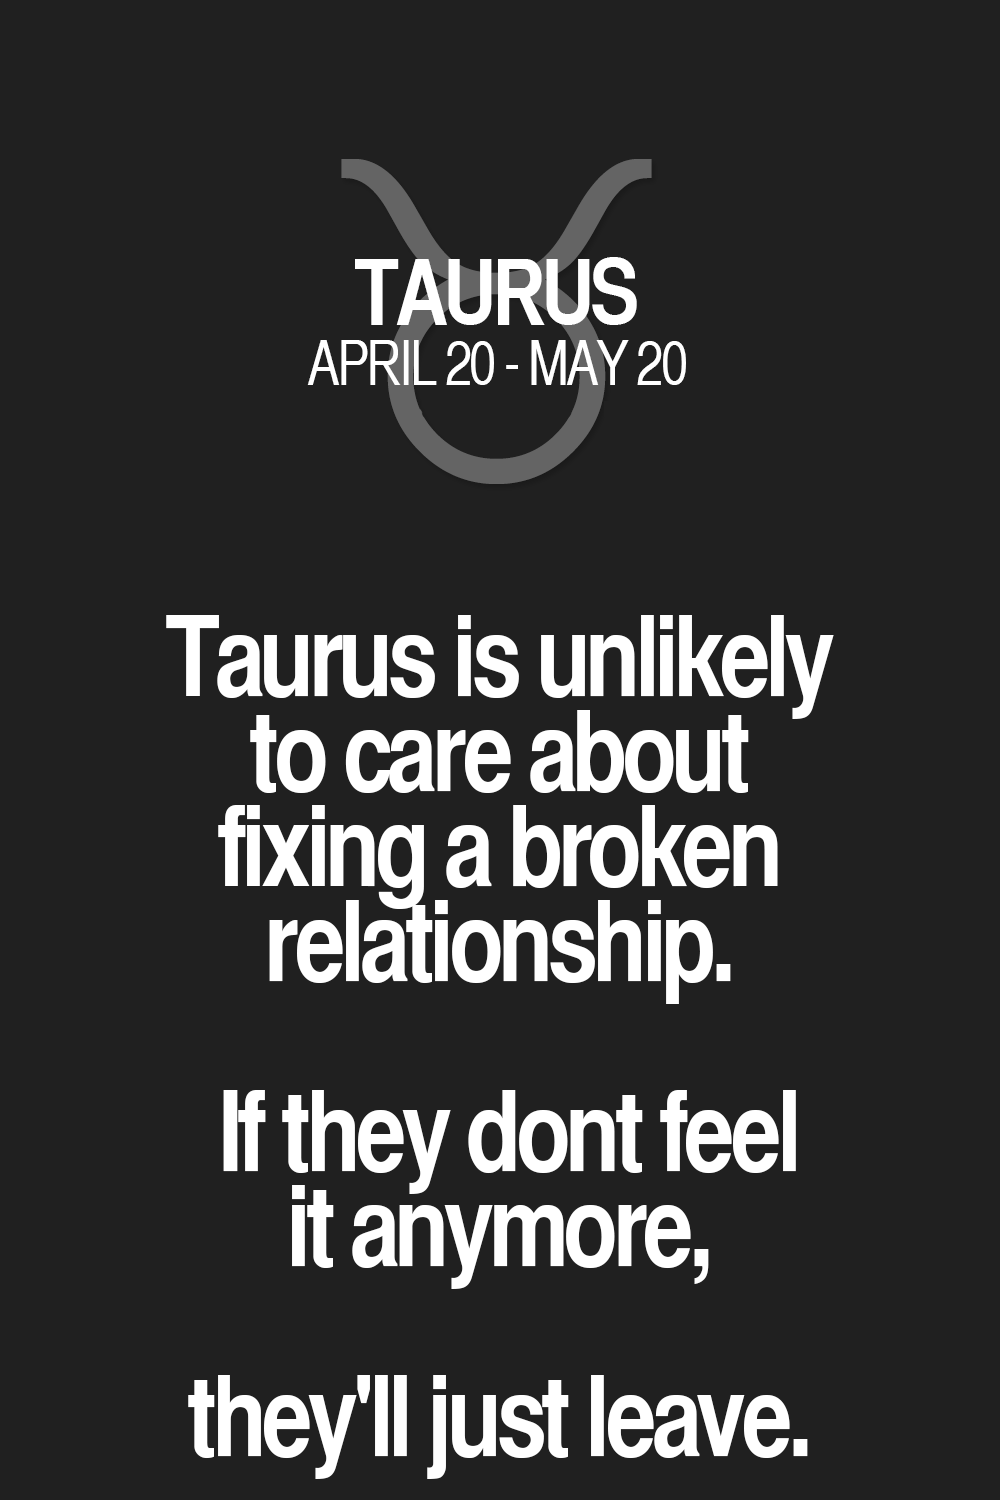 Taurus Is Unlikely To Care About Fixing A Broken Relationship If